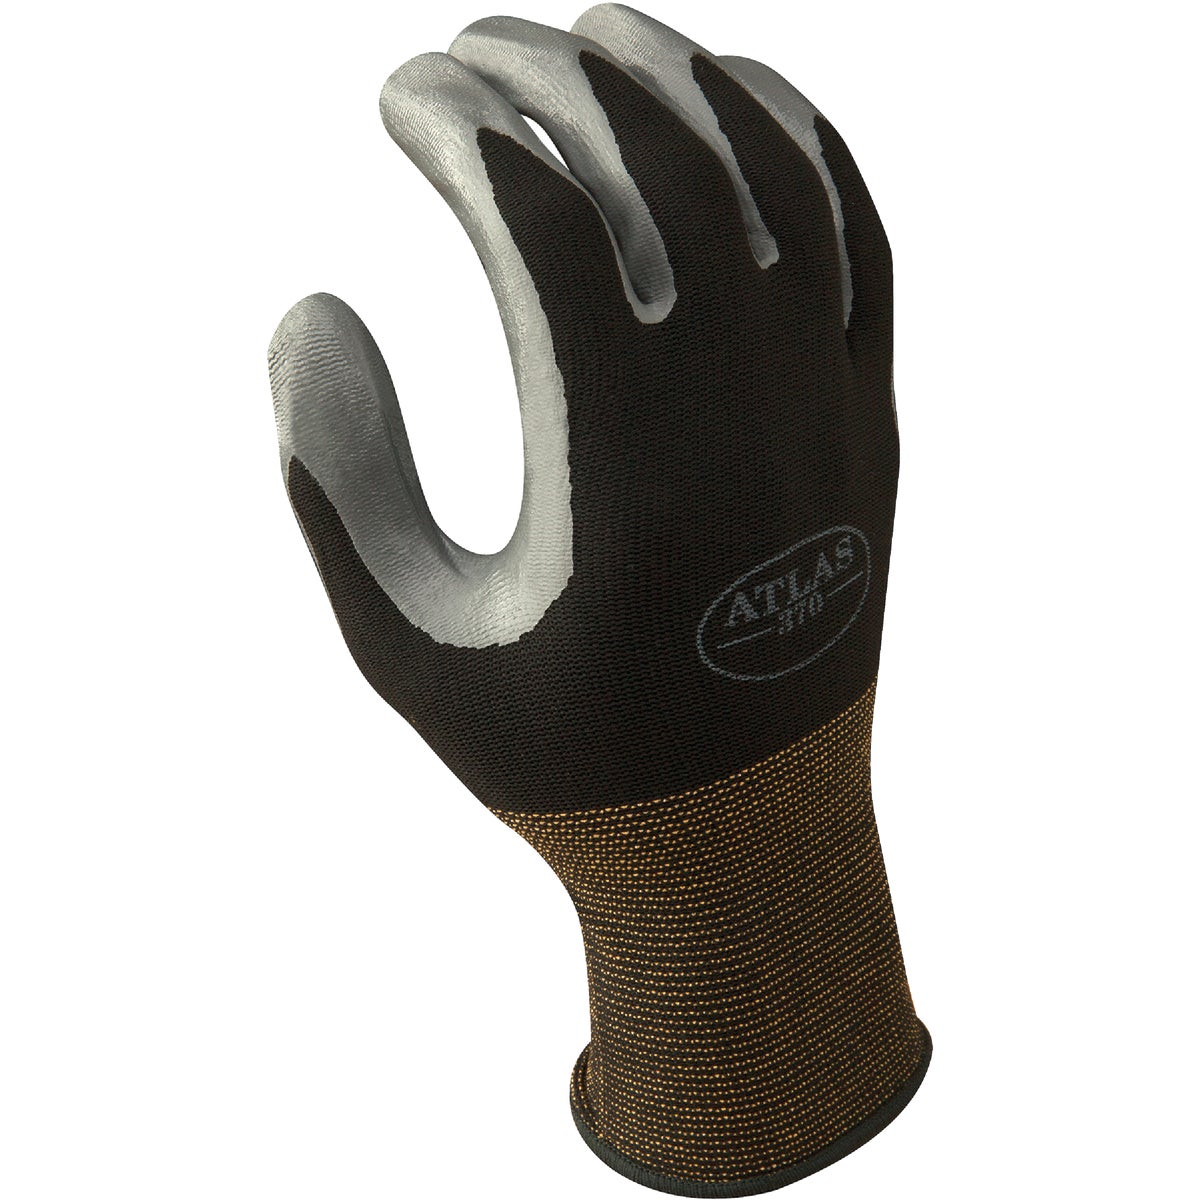 LRG BLK NITRILE GLOVE - 370BL-08.RT by Showa Best Glove